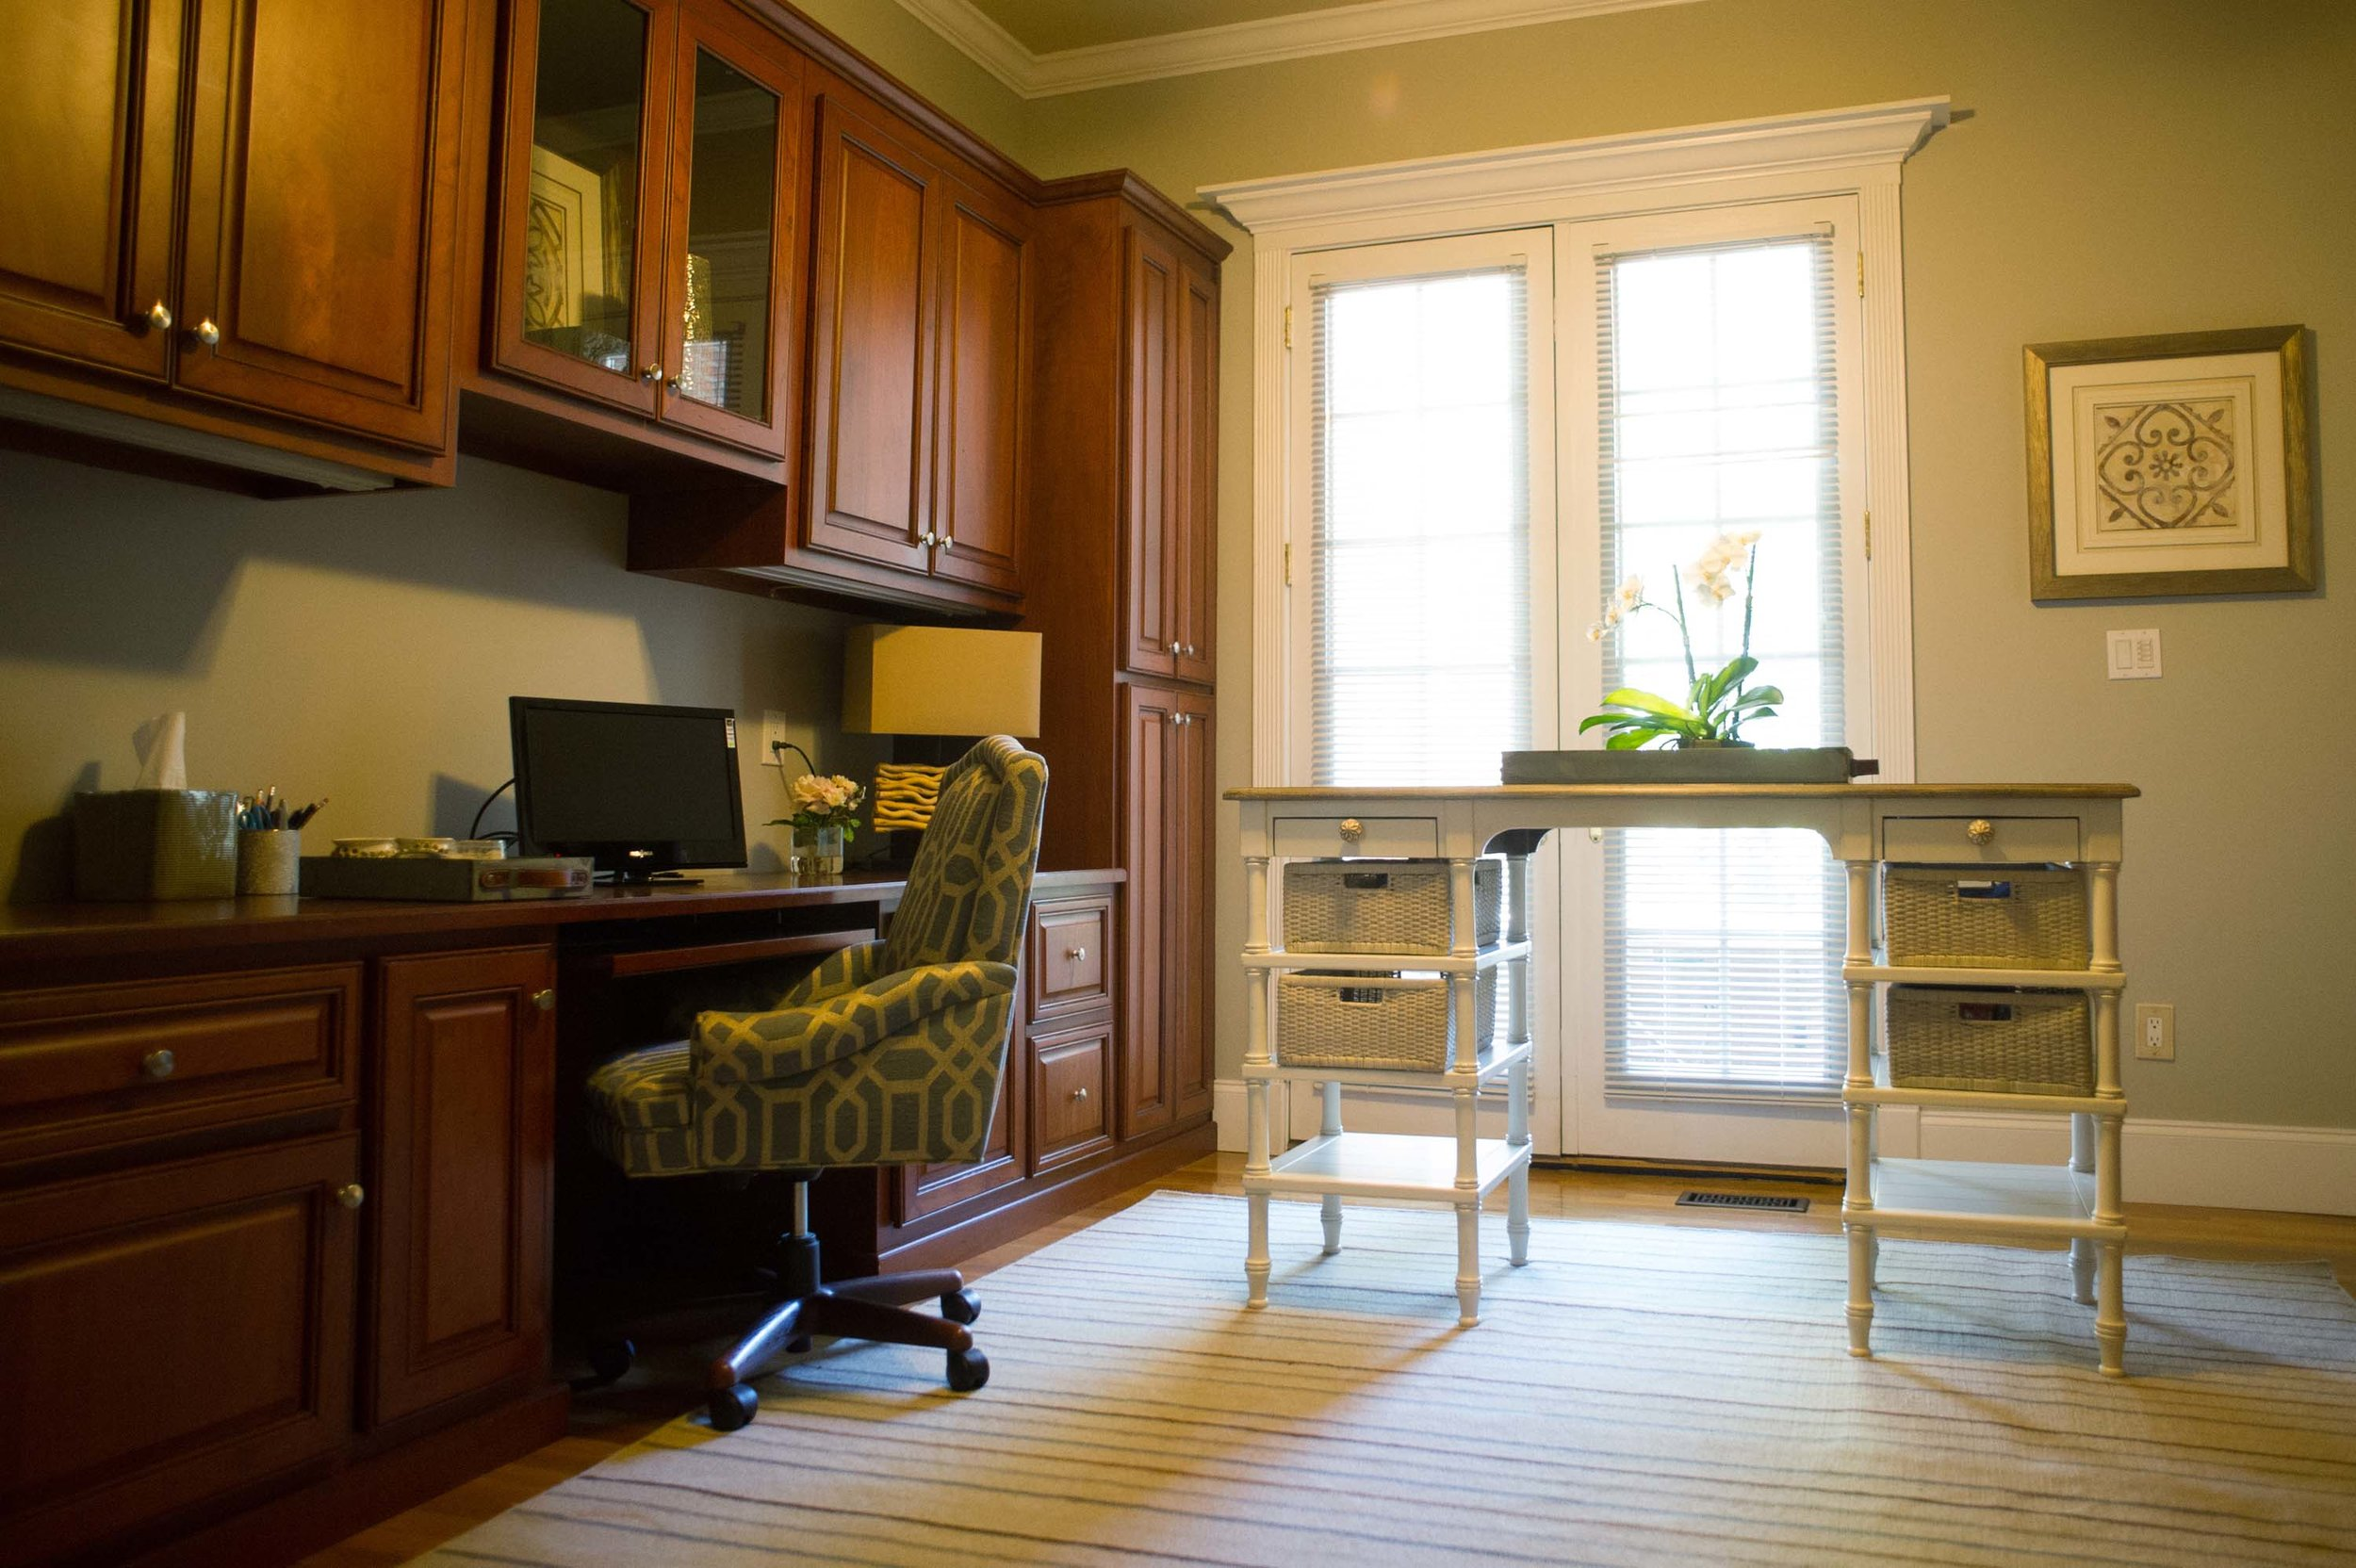 House interior with wooden cabinet, table, office chair and a desktop